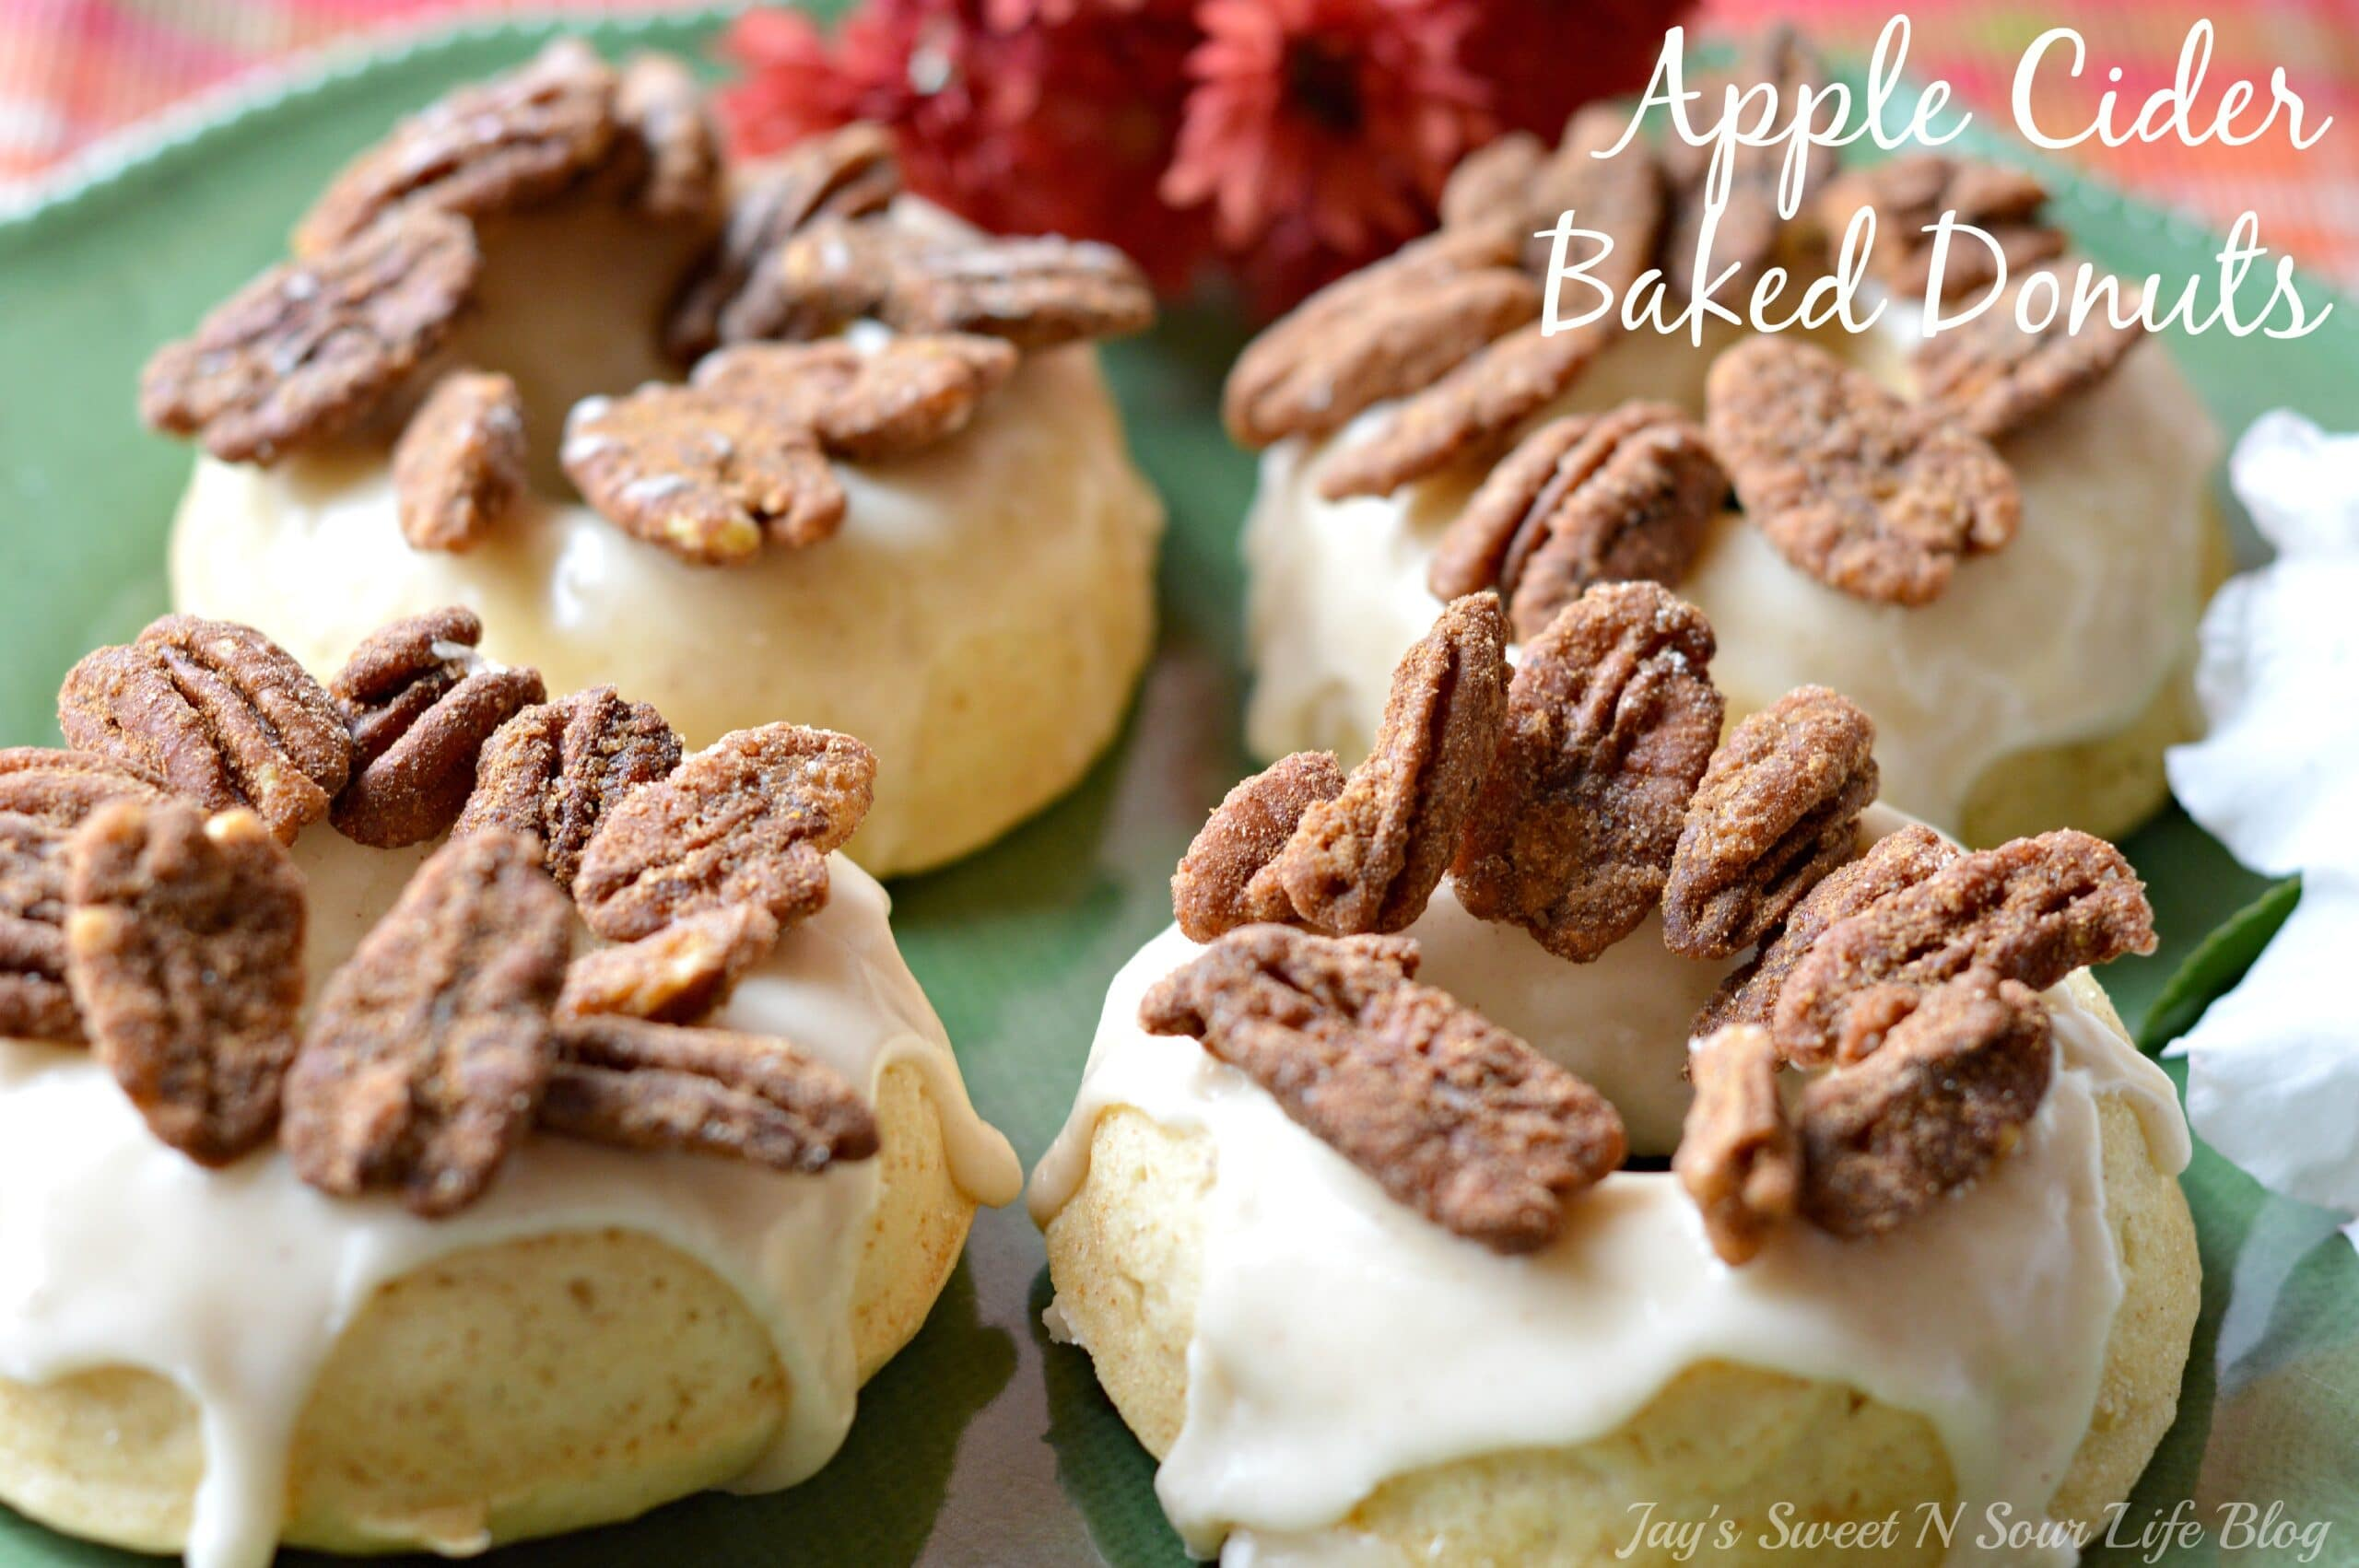 Apple Cider Baked Donuts